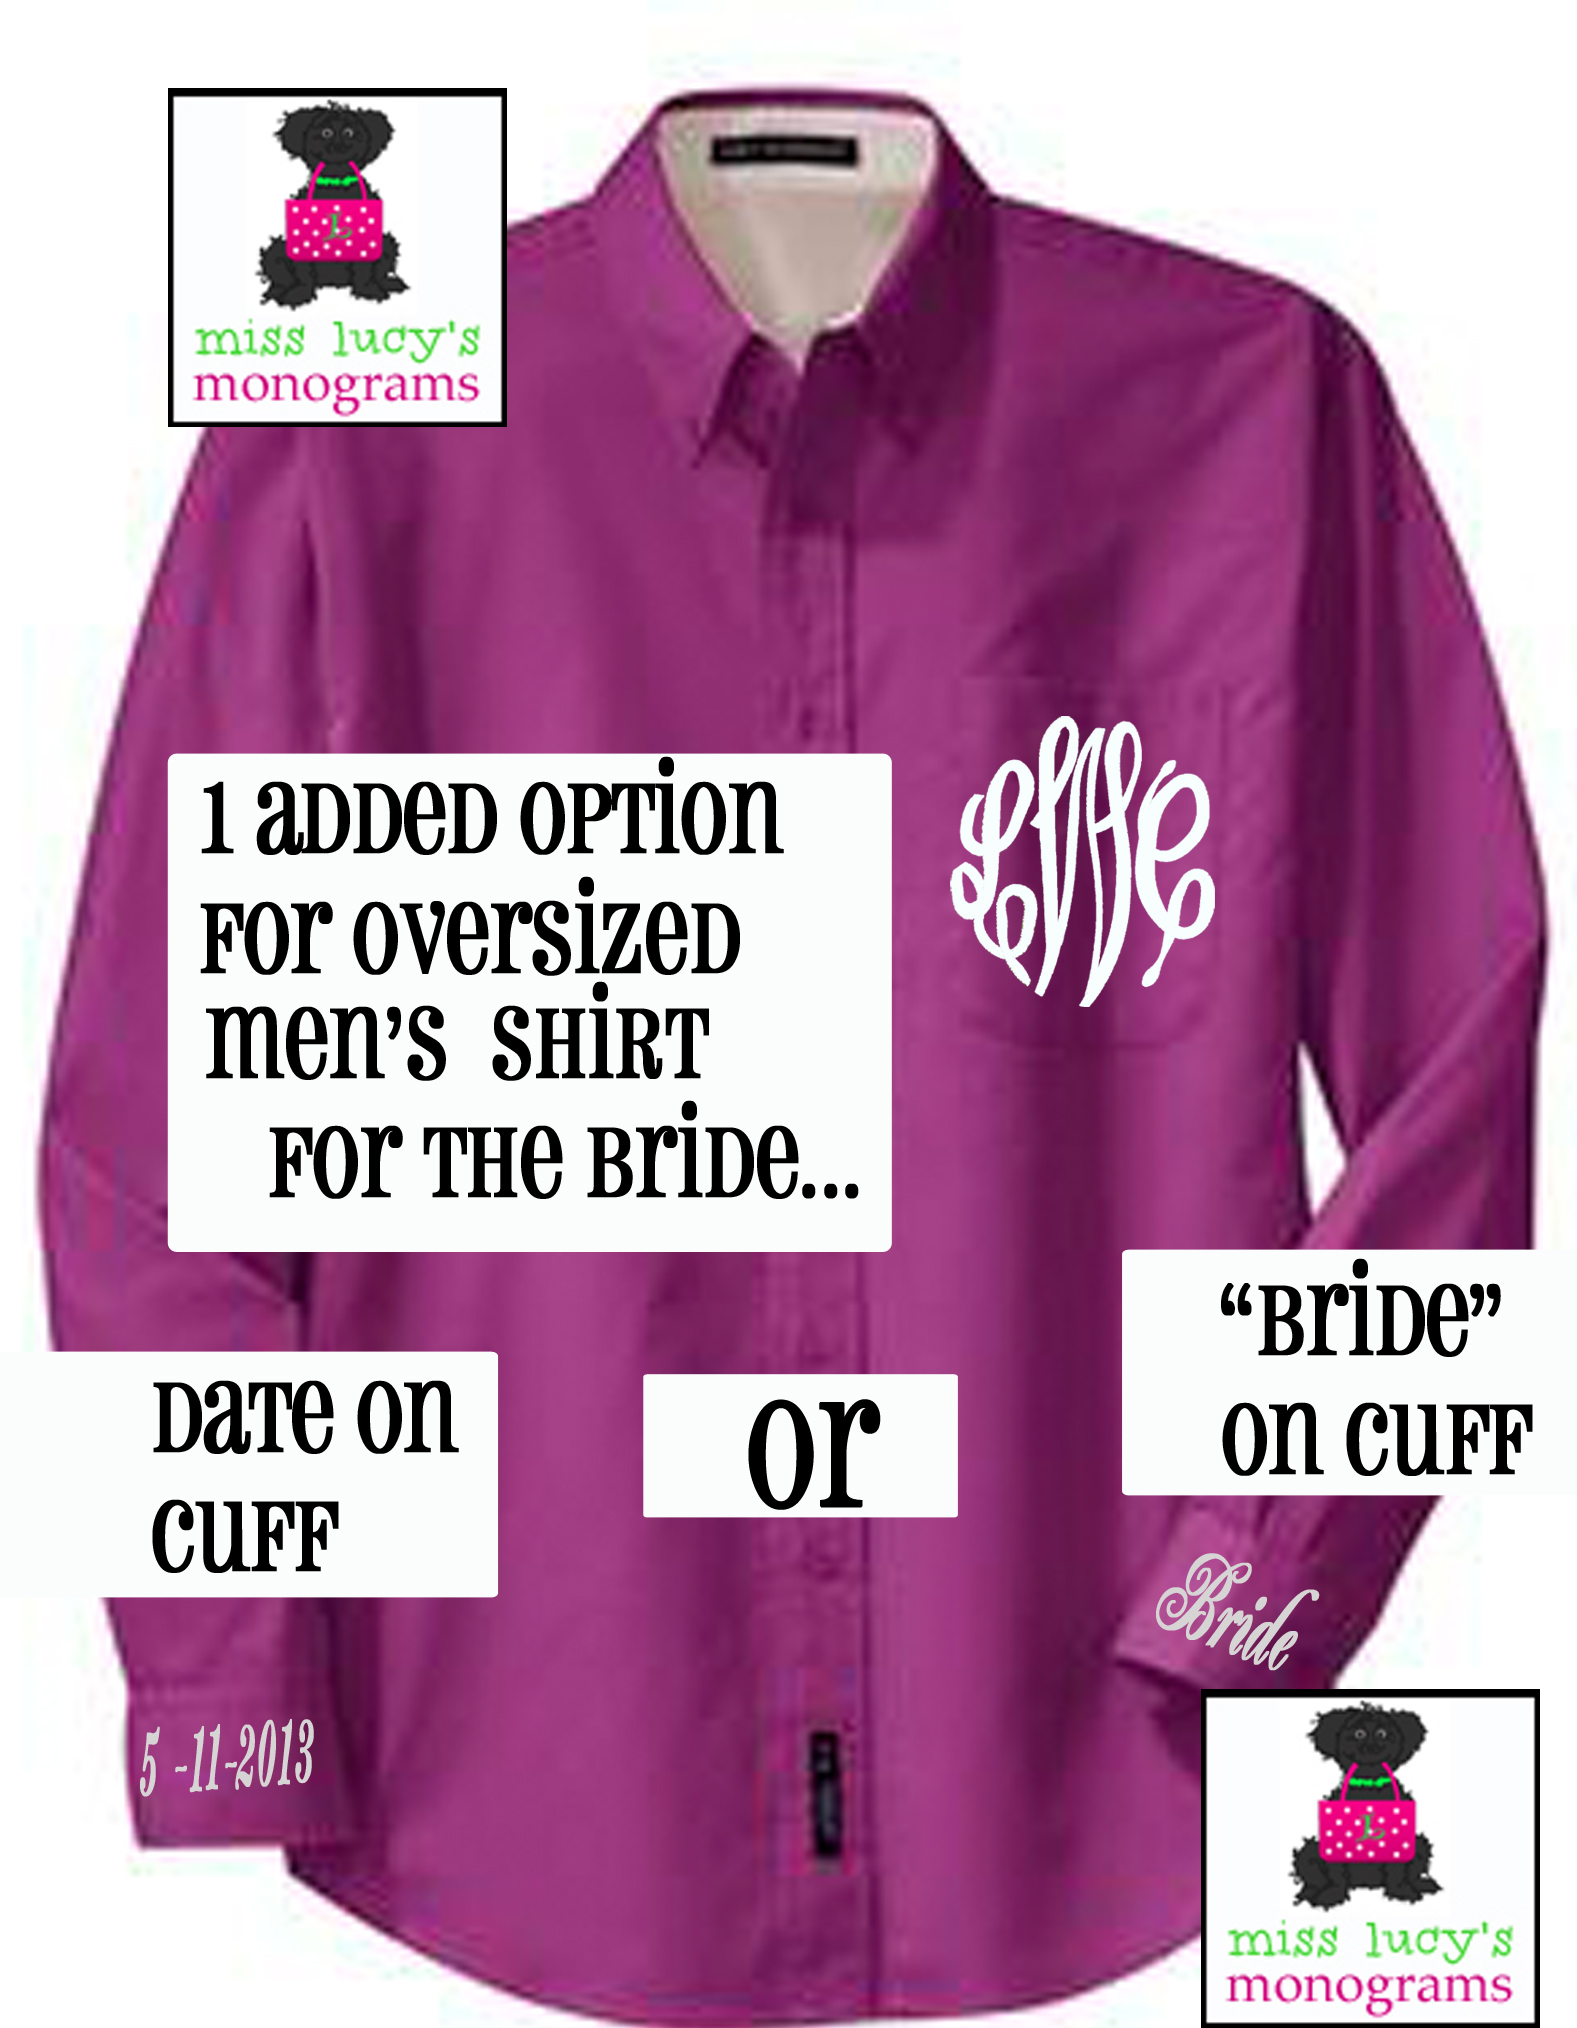 1-option-for-wedding-shirt-edited-3.jpg